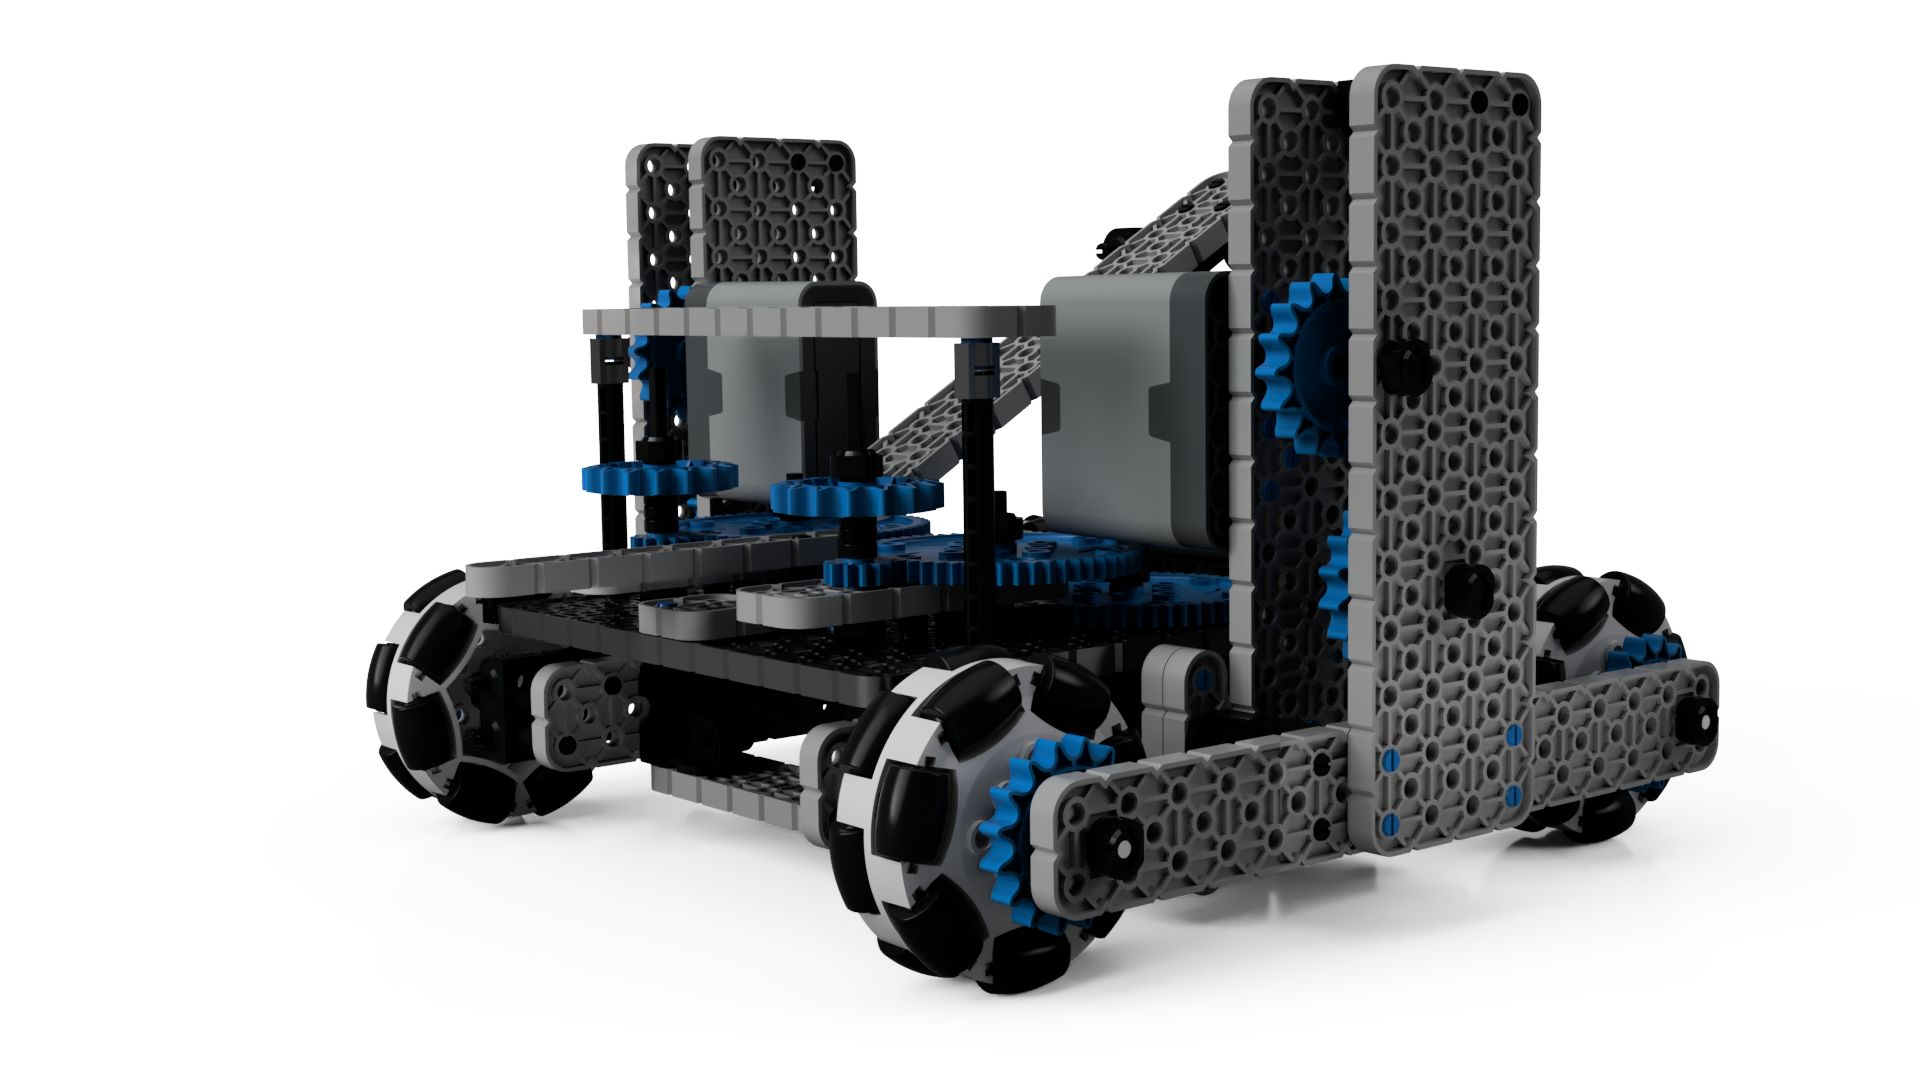 Vex-iq---ball-trigger-robot-2019-jun-05-08-53-39pm-000-customizedview7122264708-png-3500-3500